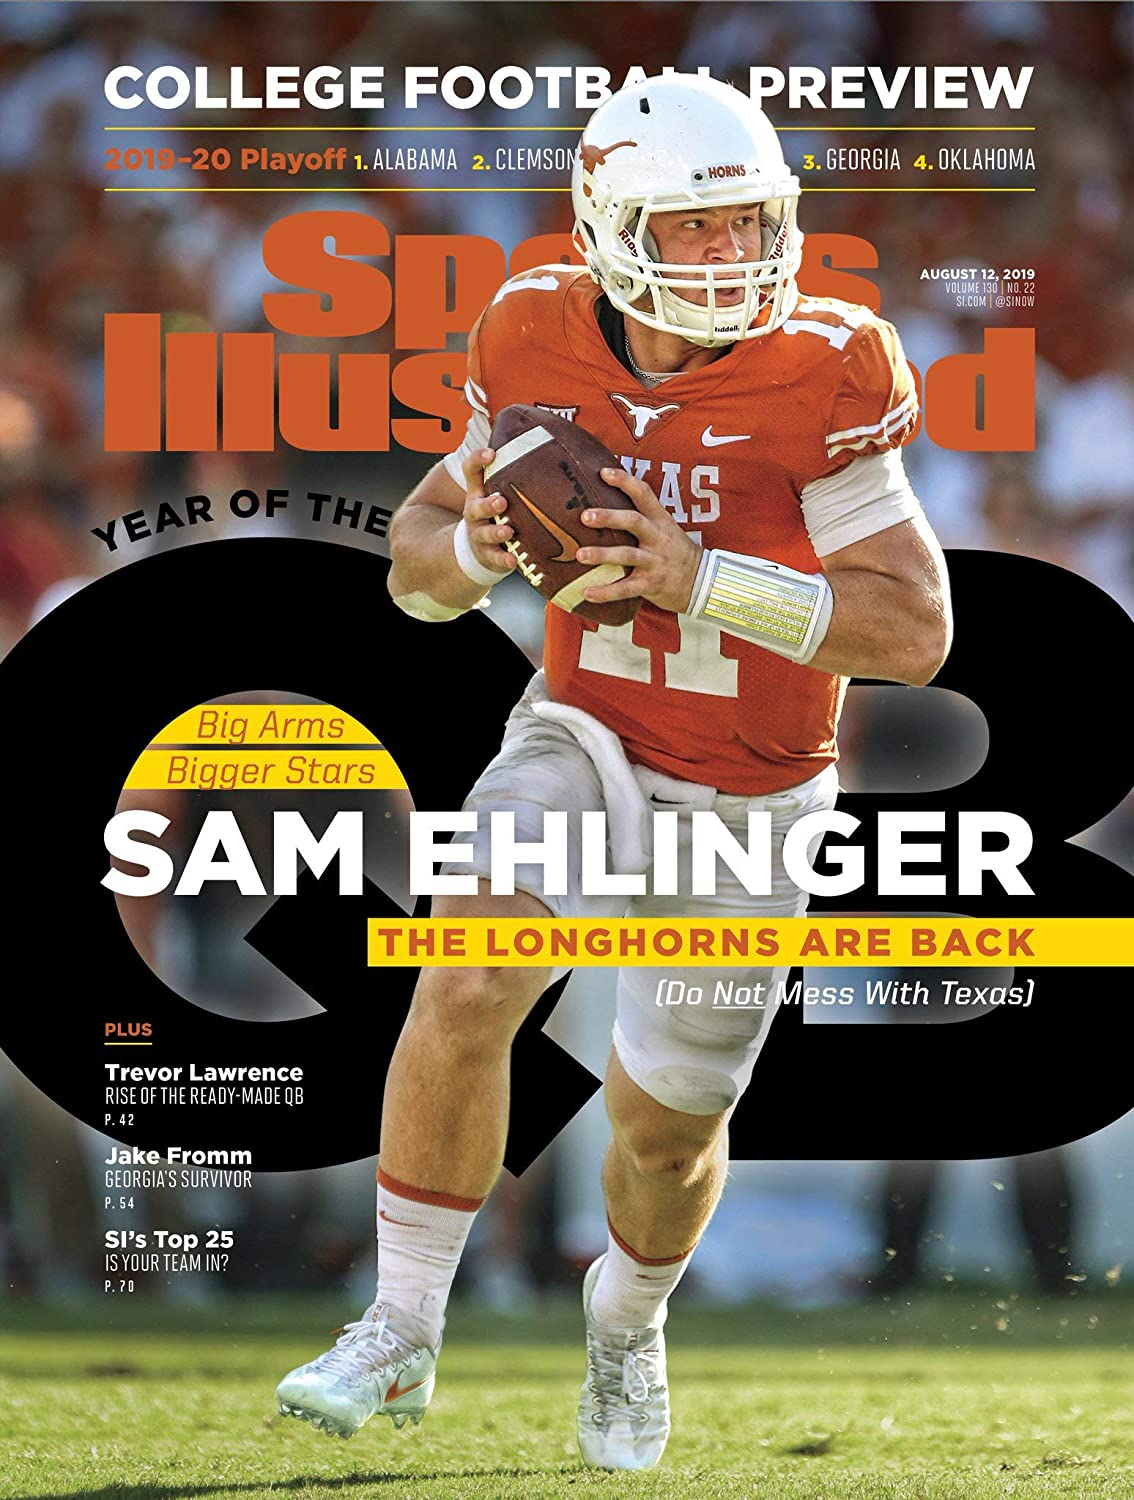 Amazon Com Fan Prints Sam Ehlinger On Huge 13 X17 Si 2019 College Football Preview Cover Sports Outdoors